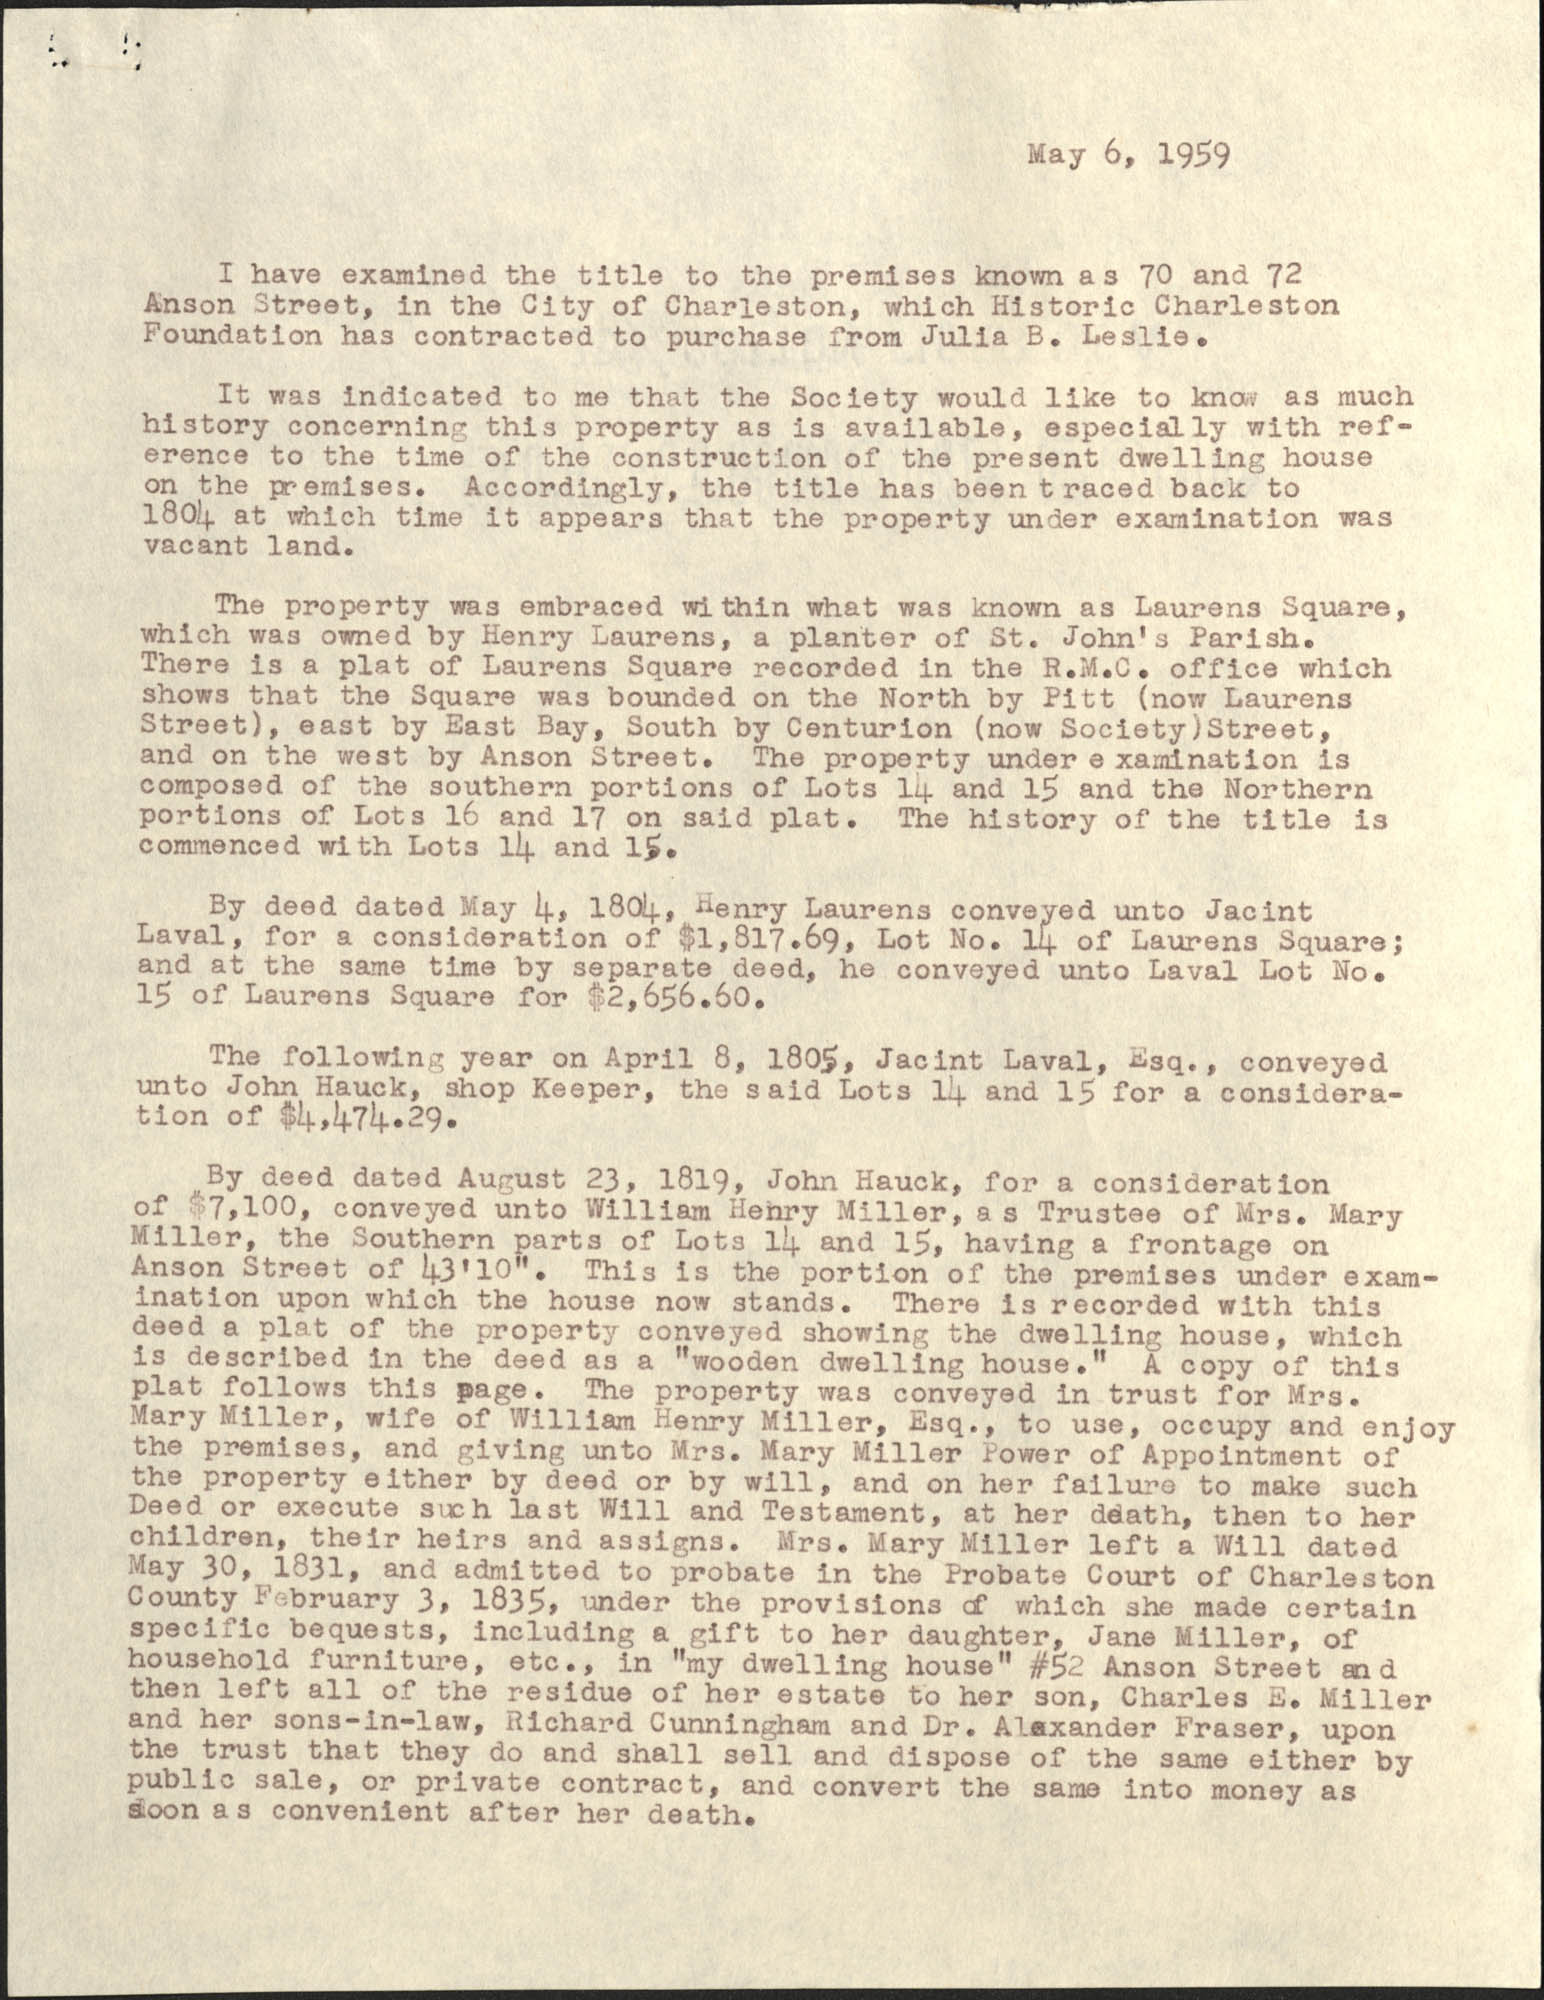 Letter from S. Henry Edmunds to Ben Scott Whaley, May 6, 1959, Page 1